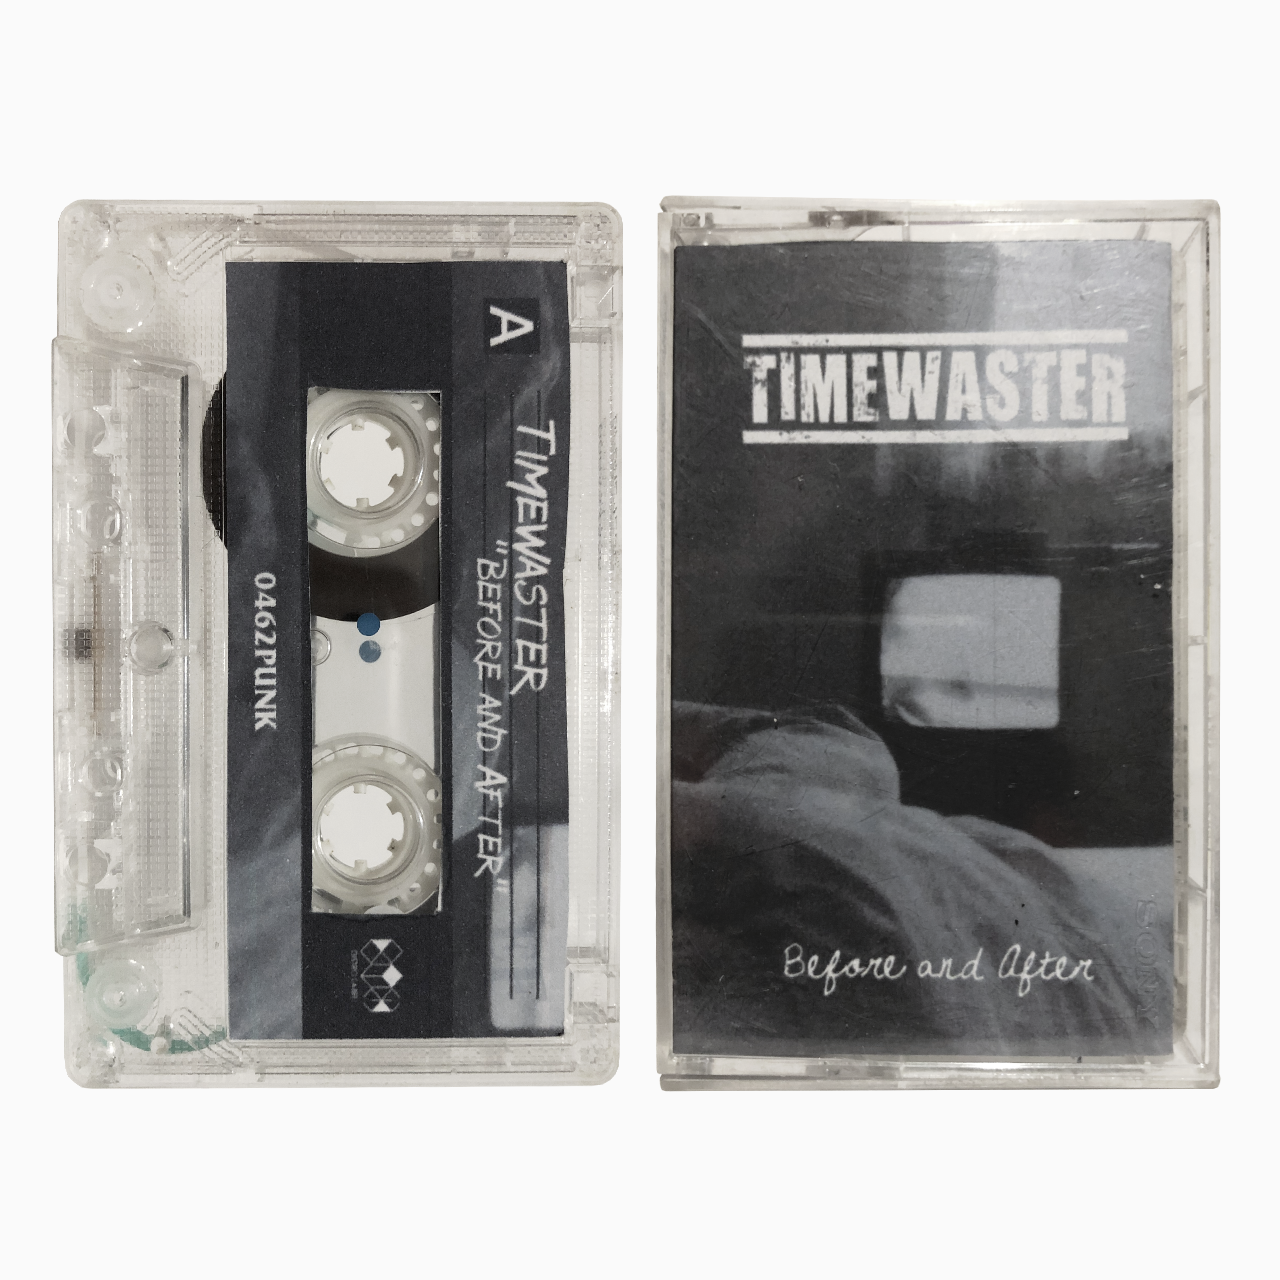 Timewaster 'Before and After' cassette